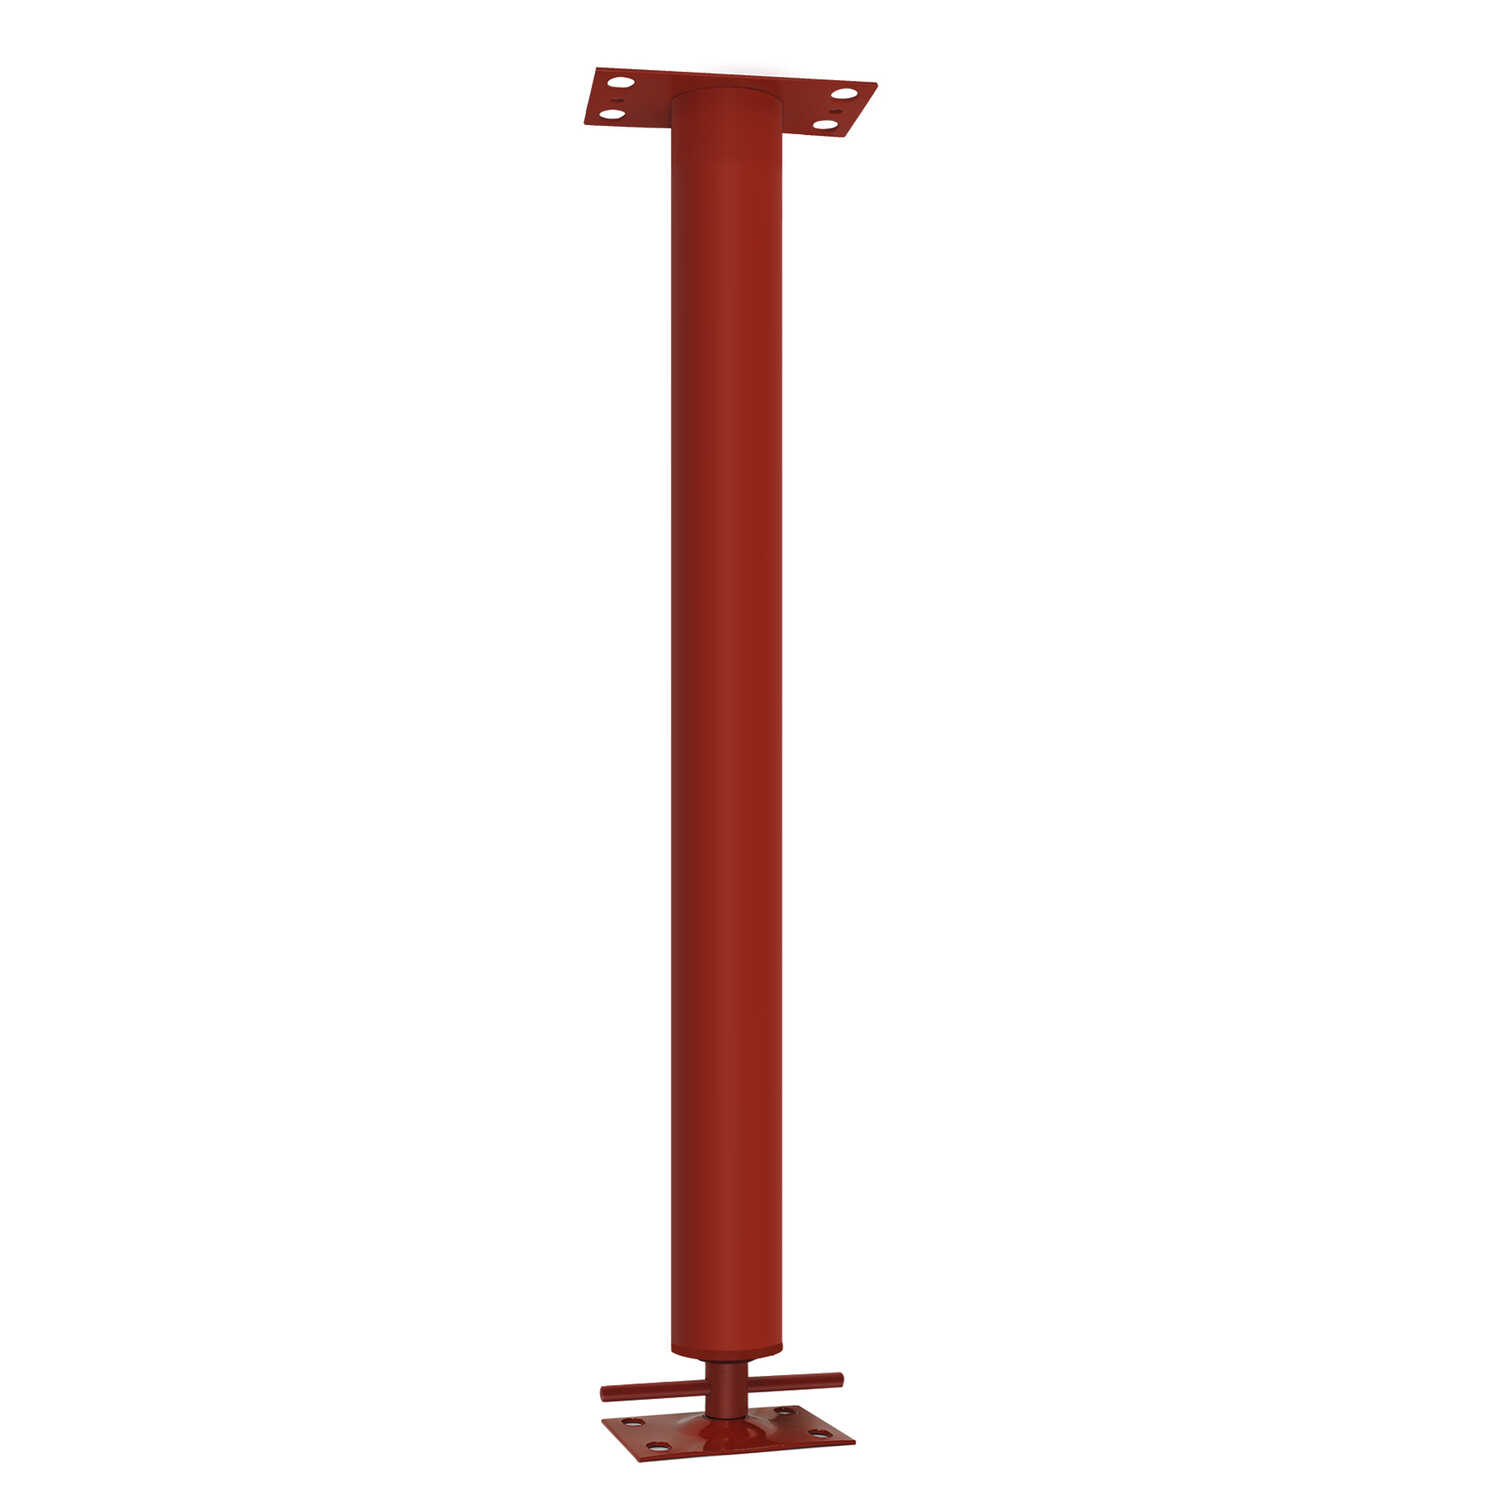 Tiger Brand Jack  3 in. Dia. x 20 in. H Adjustable Building Support Column  24700 lb.